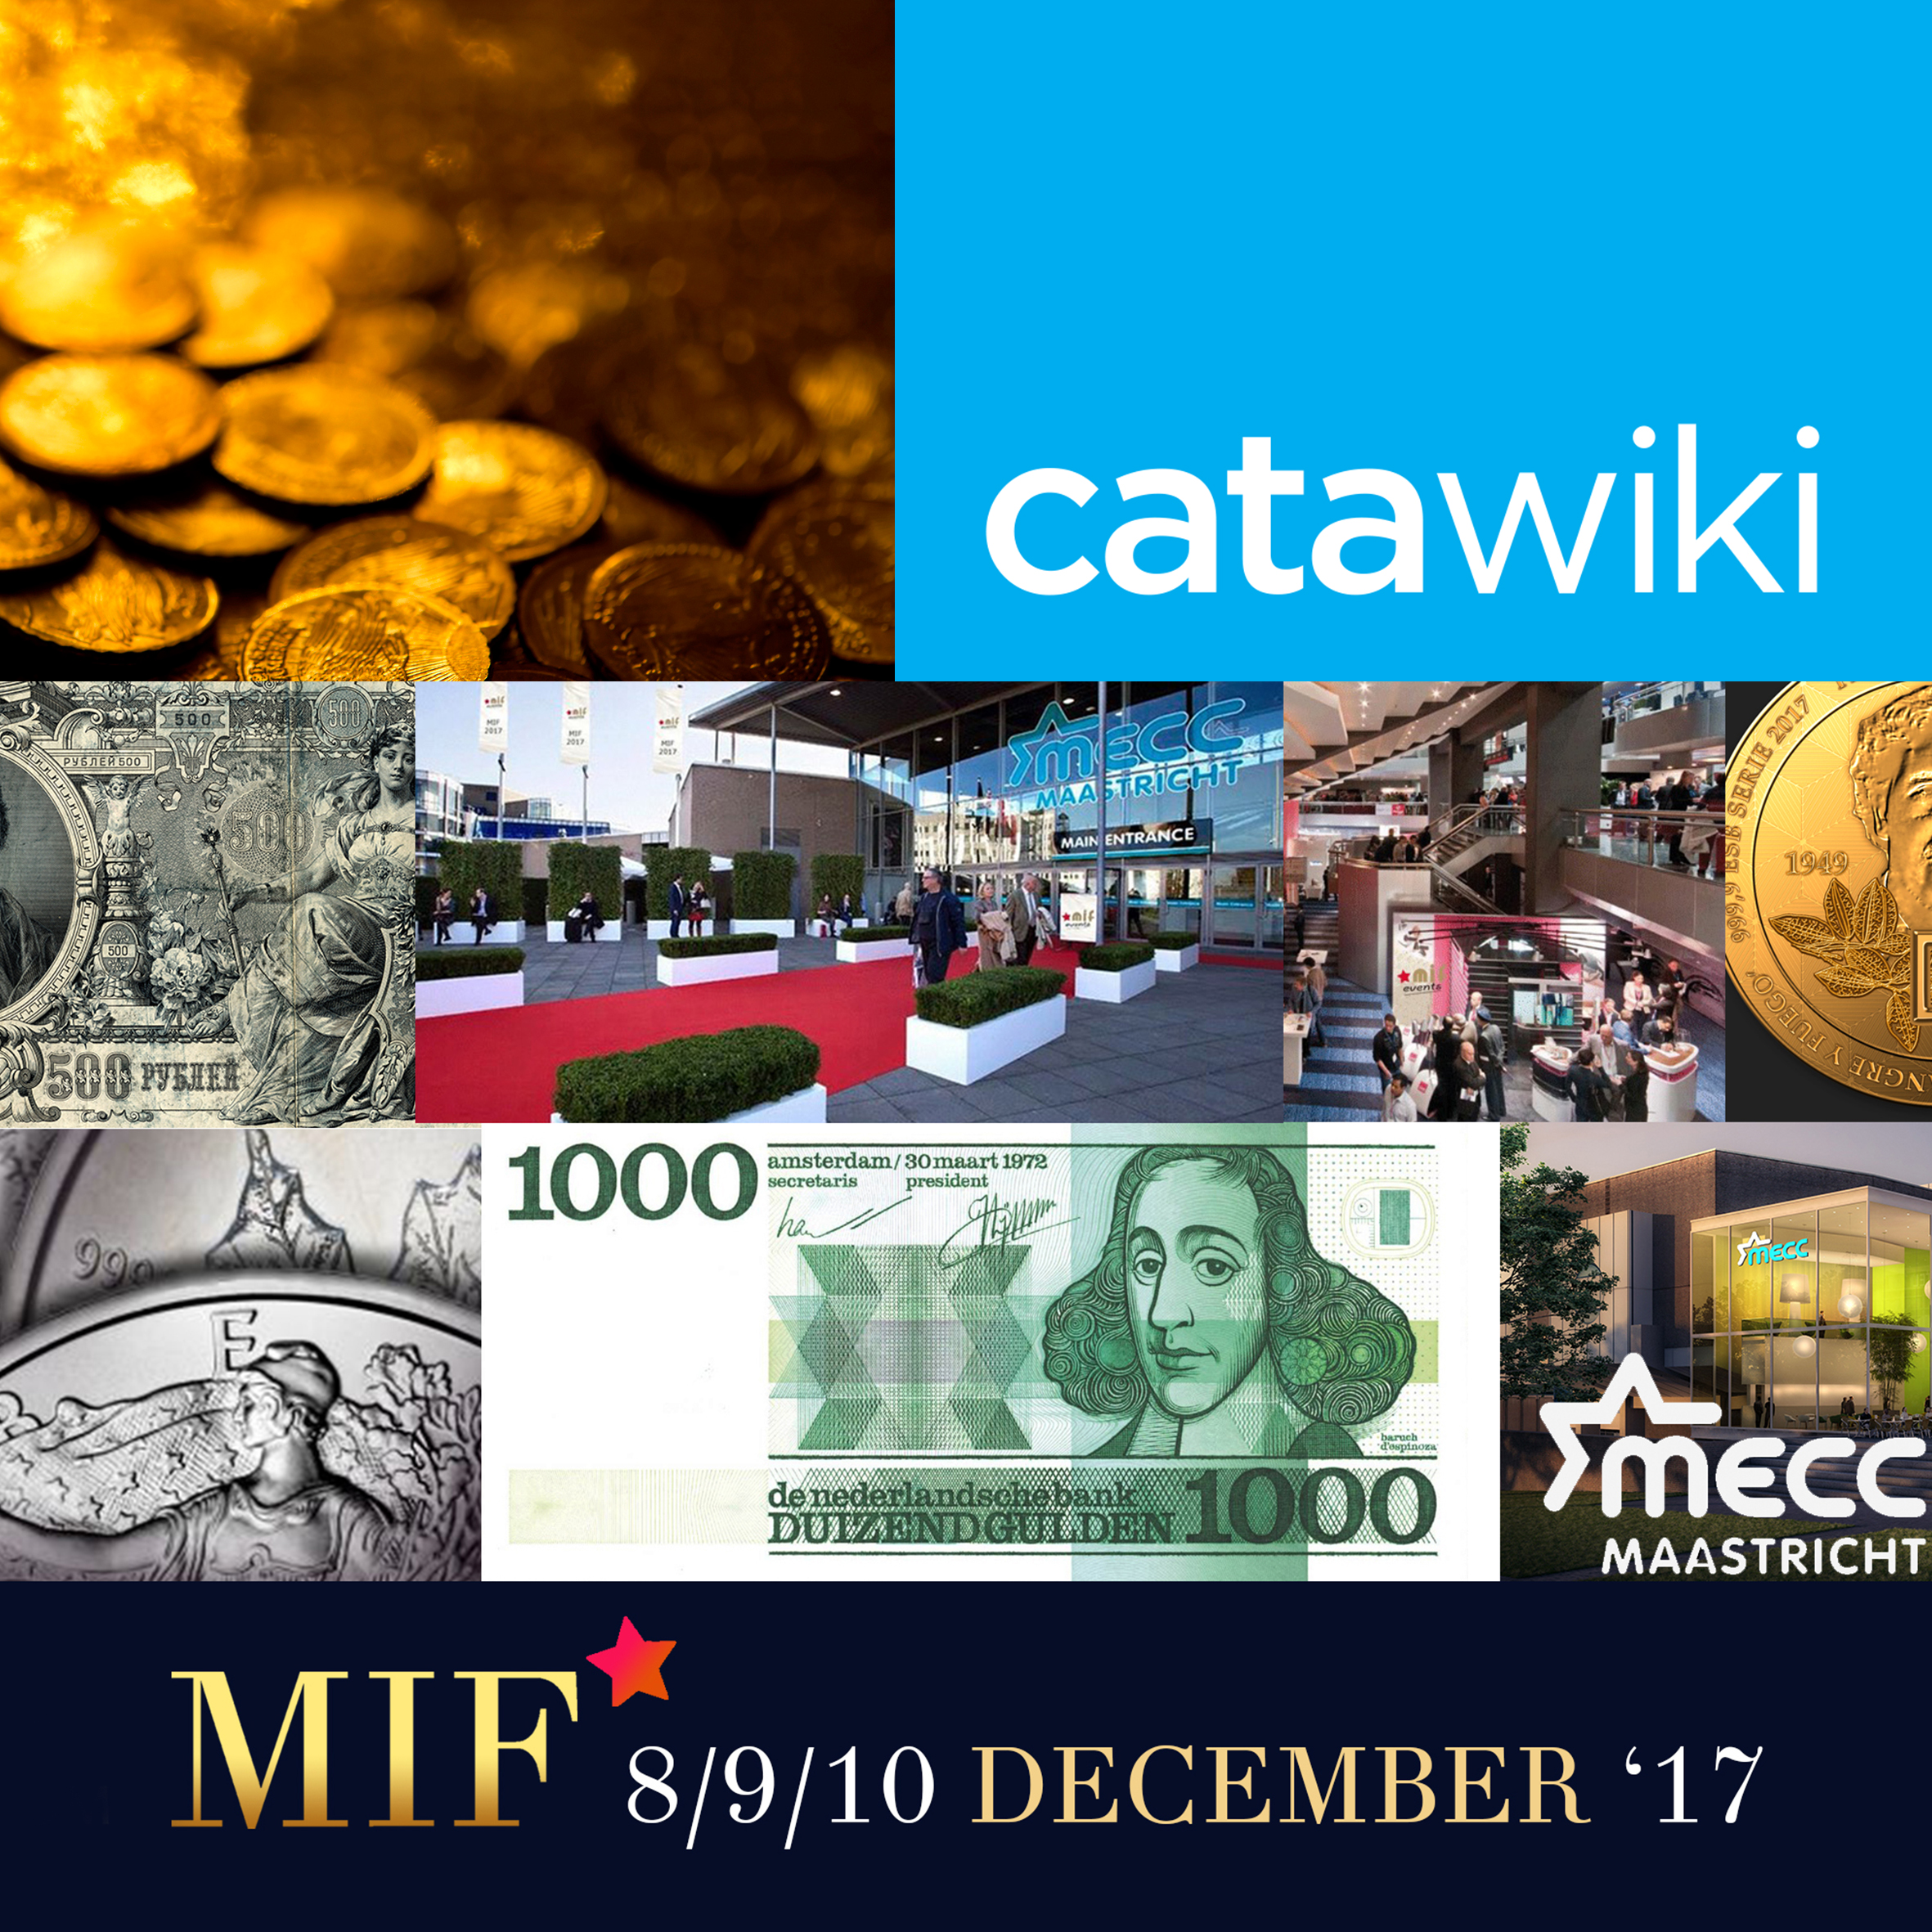 Maastricht International Fair - Europe's fastest growing auction website Catawiki is coming to MIF 2017 in MECC Maastricht